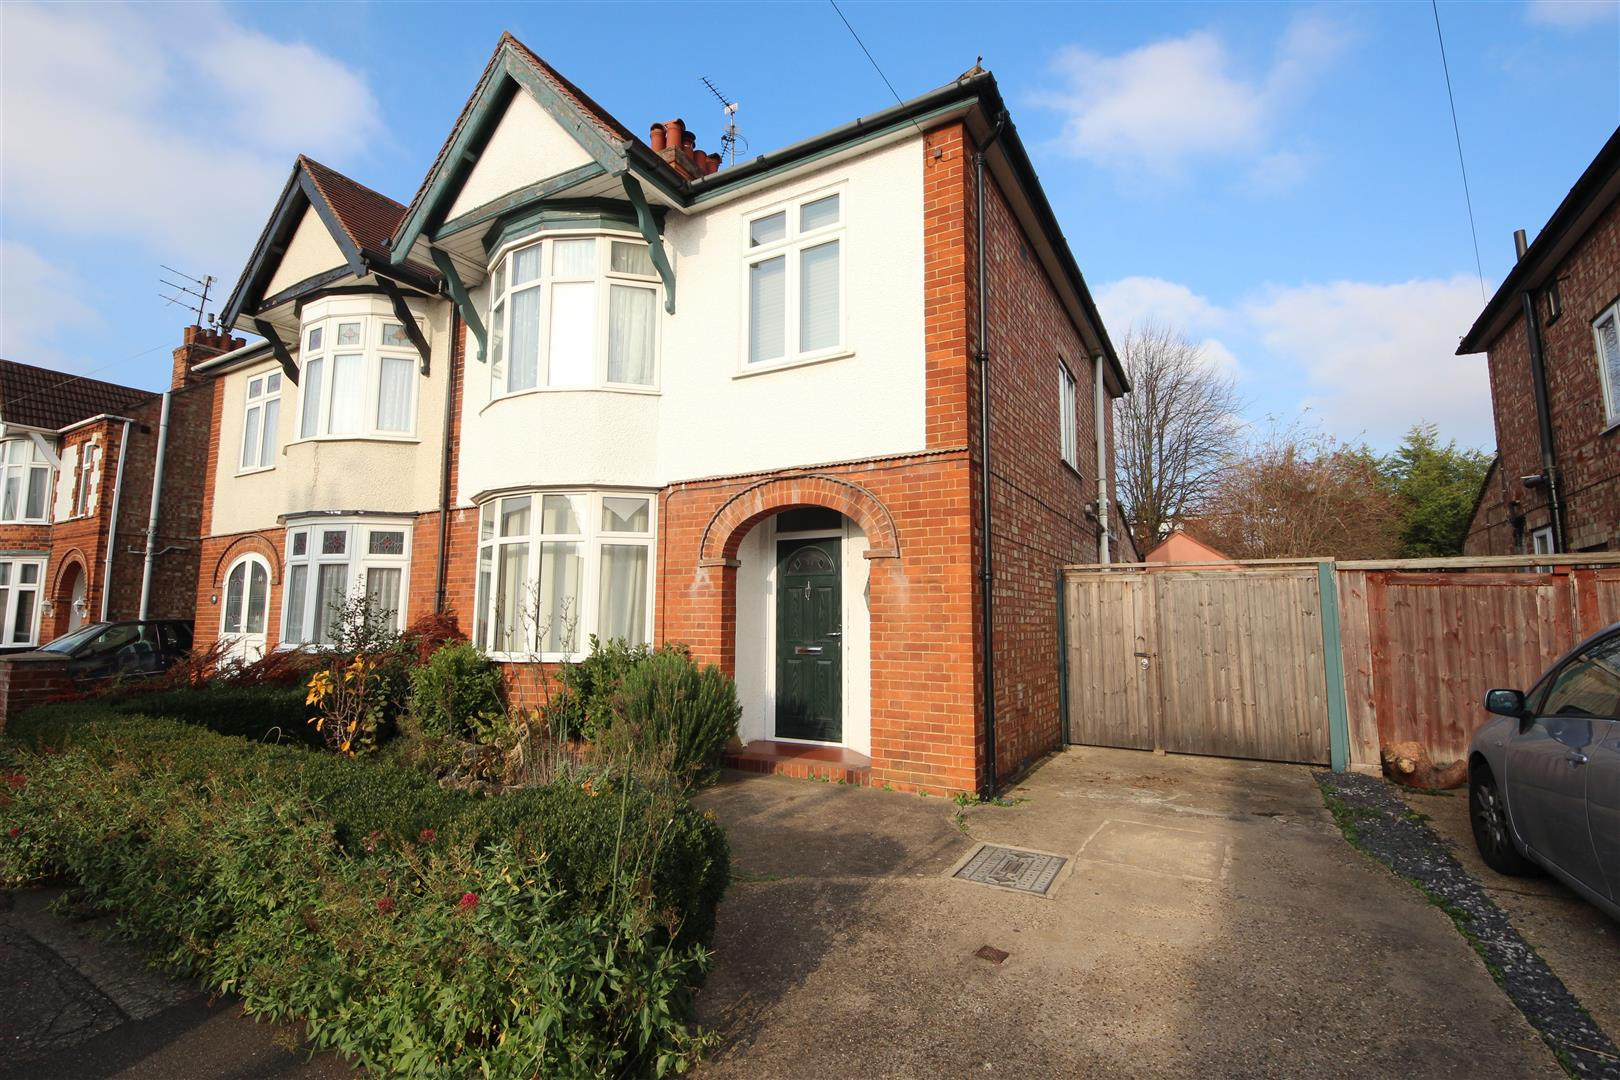 3 Bedroom Property For Sale In Cecil Road Central